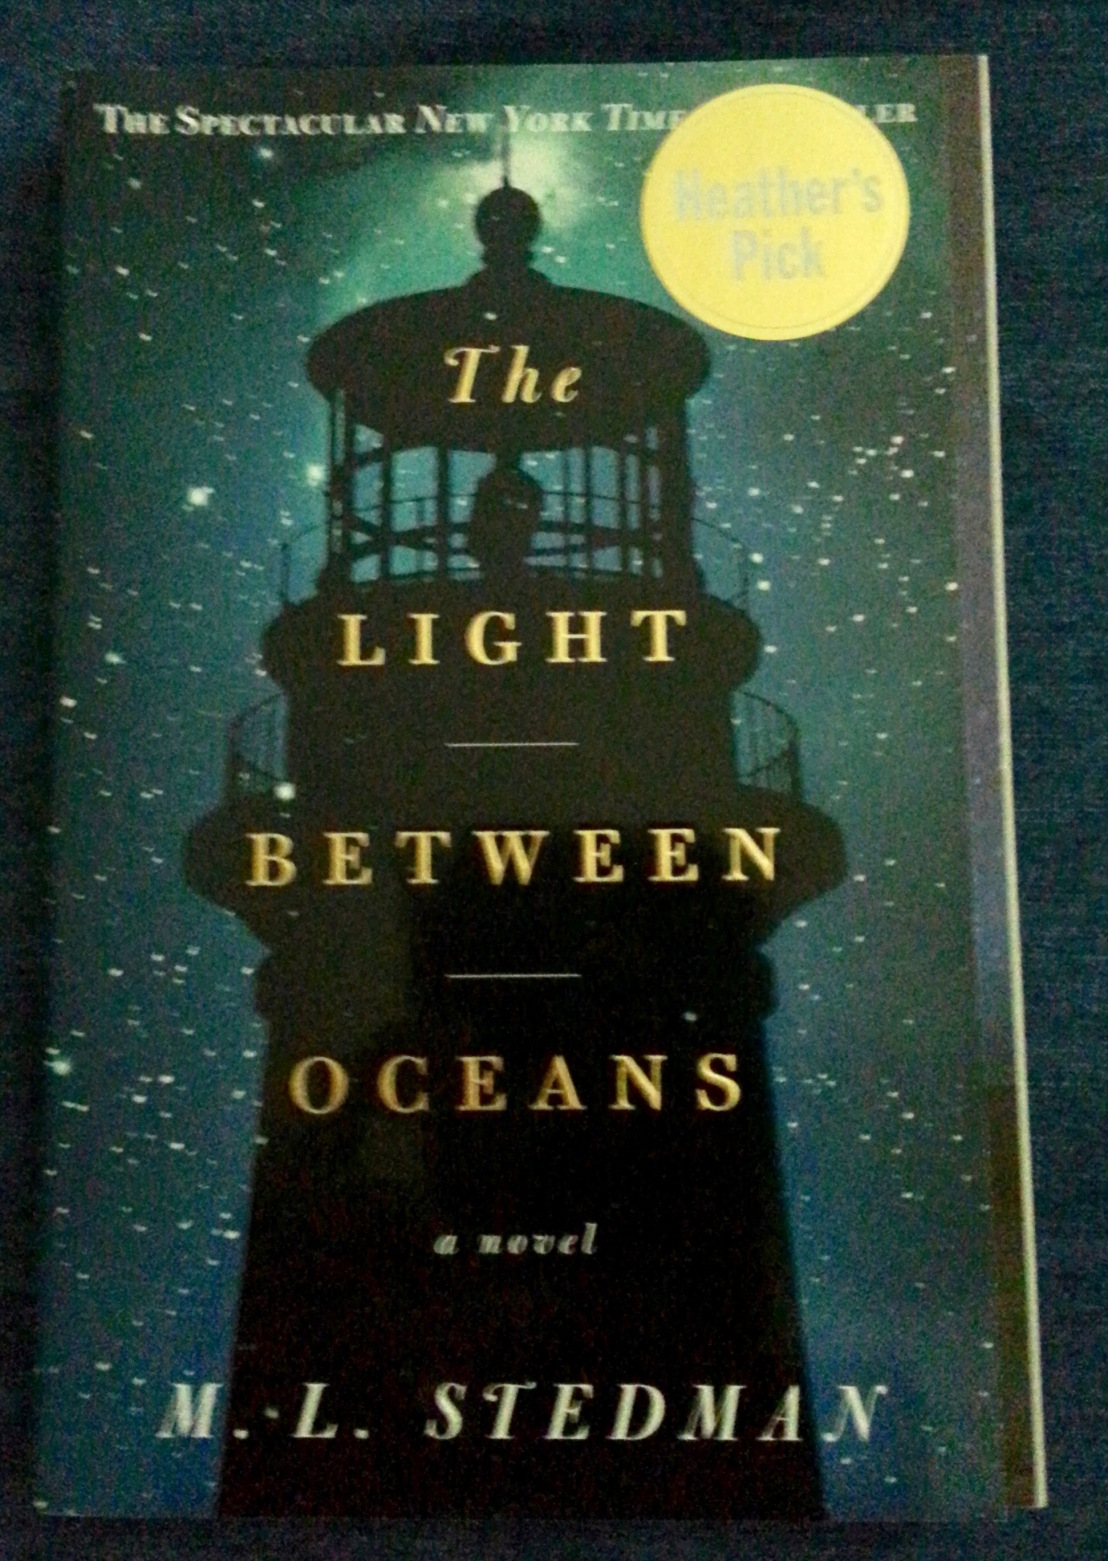 M.L. Stedman's — The Light Between Oceans *****